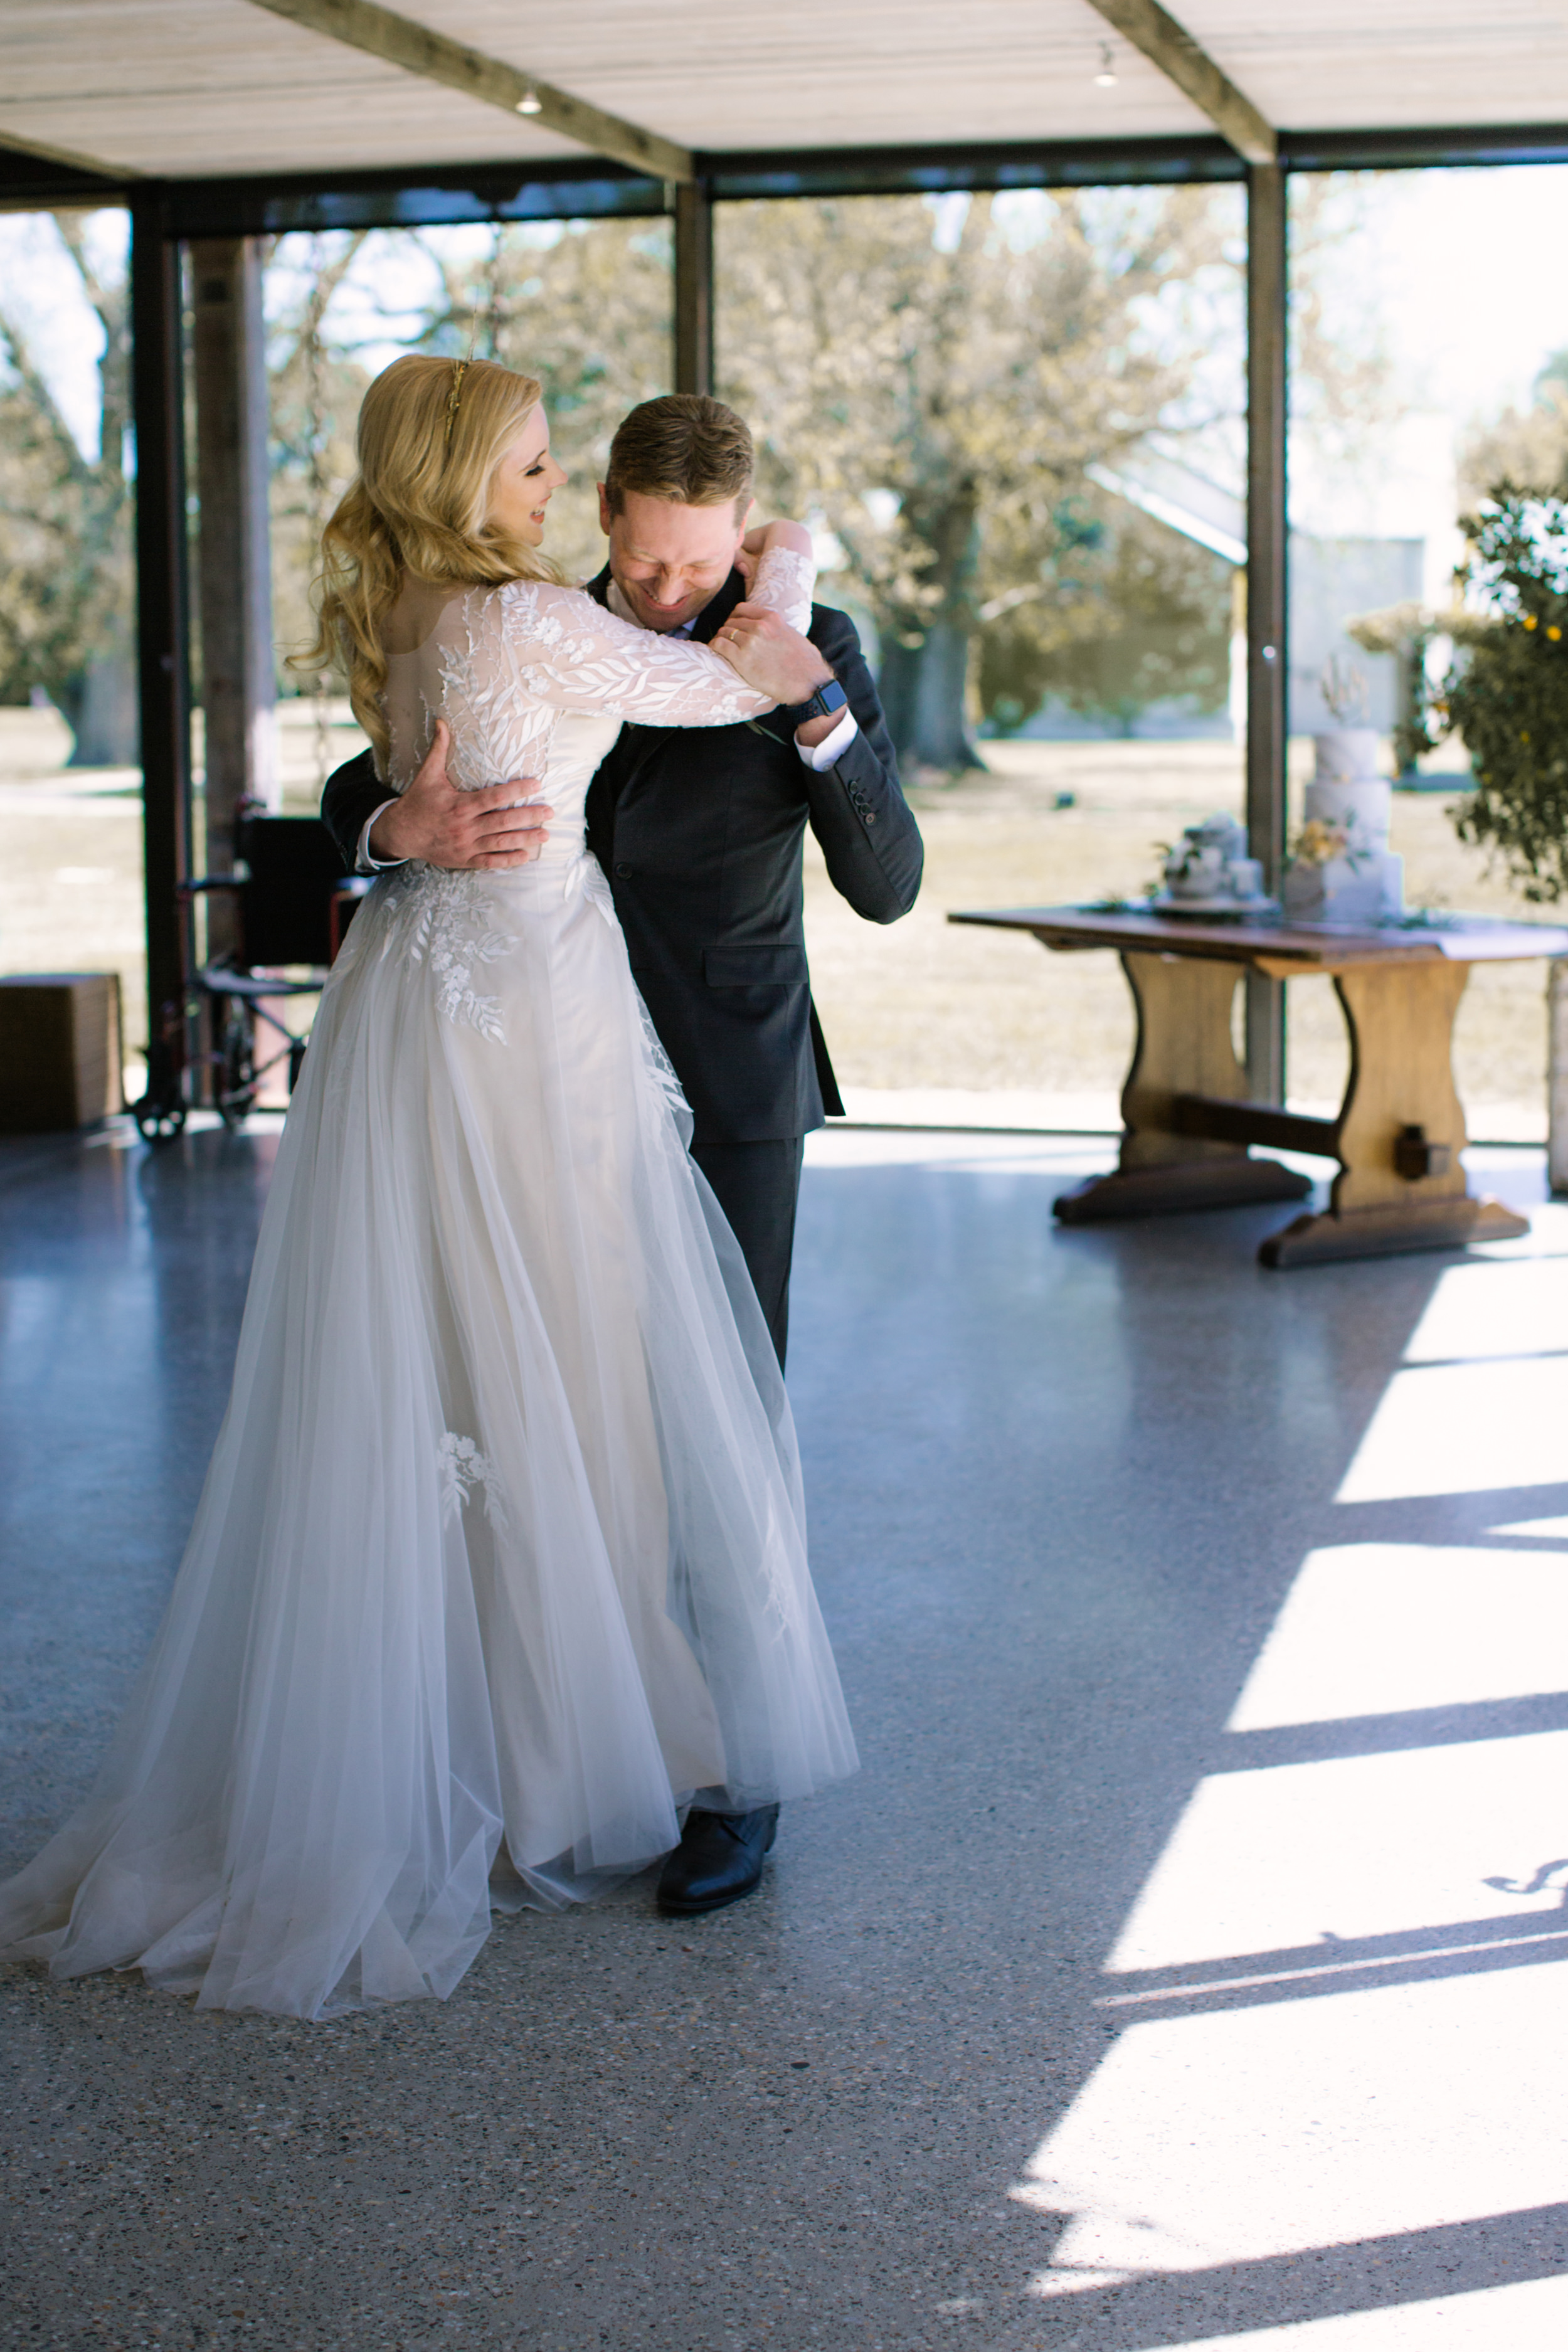 I-Got-You-Babe-&.Co.-Stones-of-the-Yarra-Valley-Wedding-Beverly-Ross0139.JPG